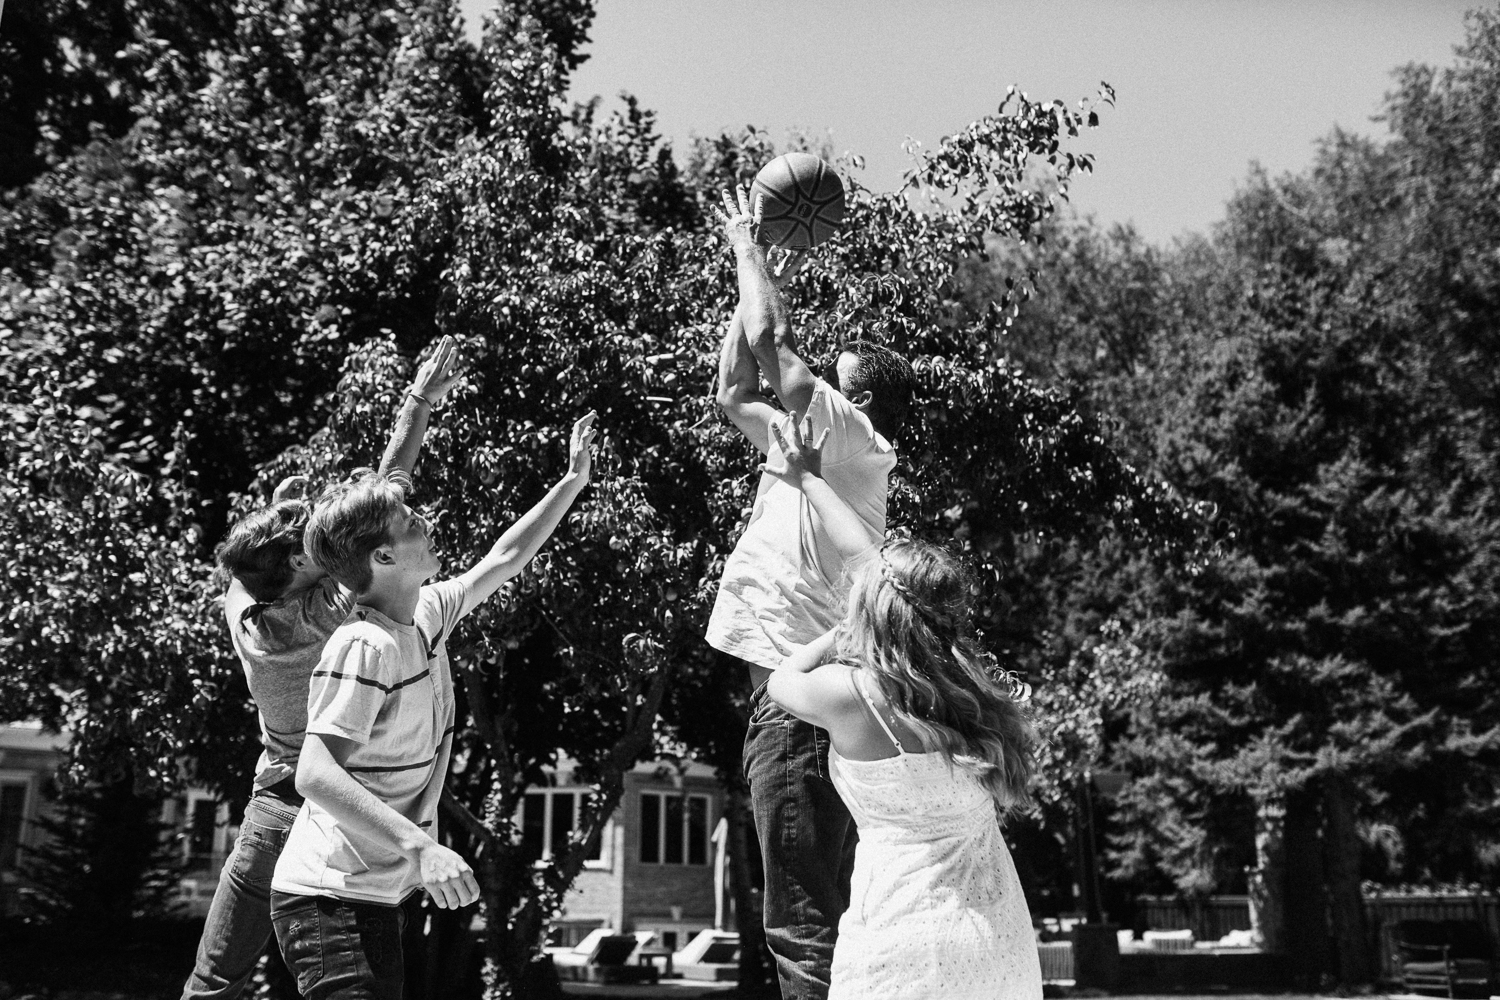 candid-black-and-white-photo-of-father-and-children-playing-basketball-at-home-with-jen-fairchild-photography-in-slc-ut